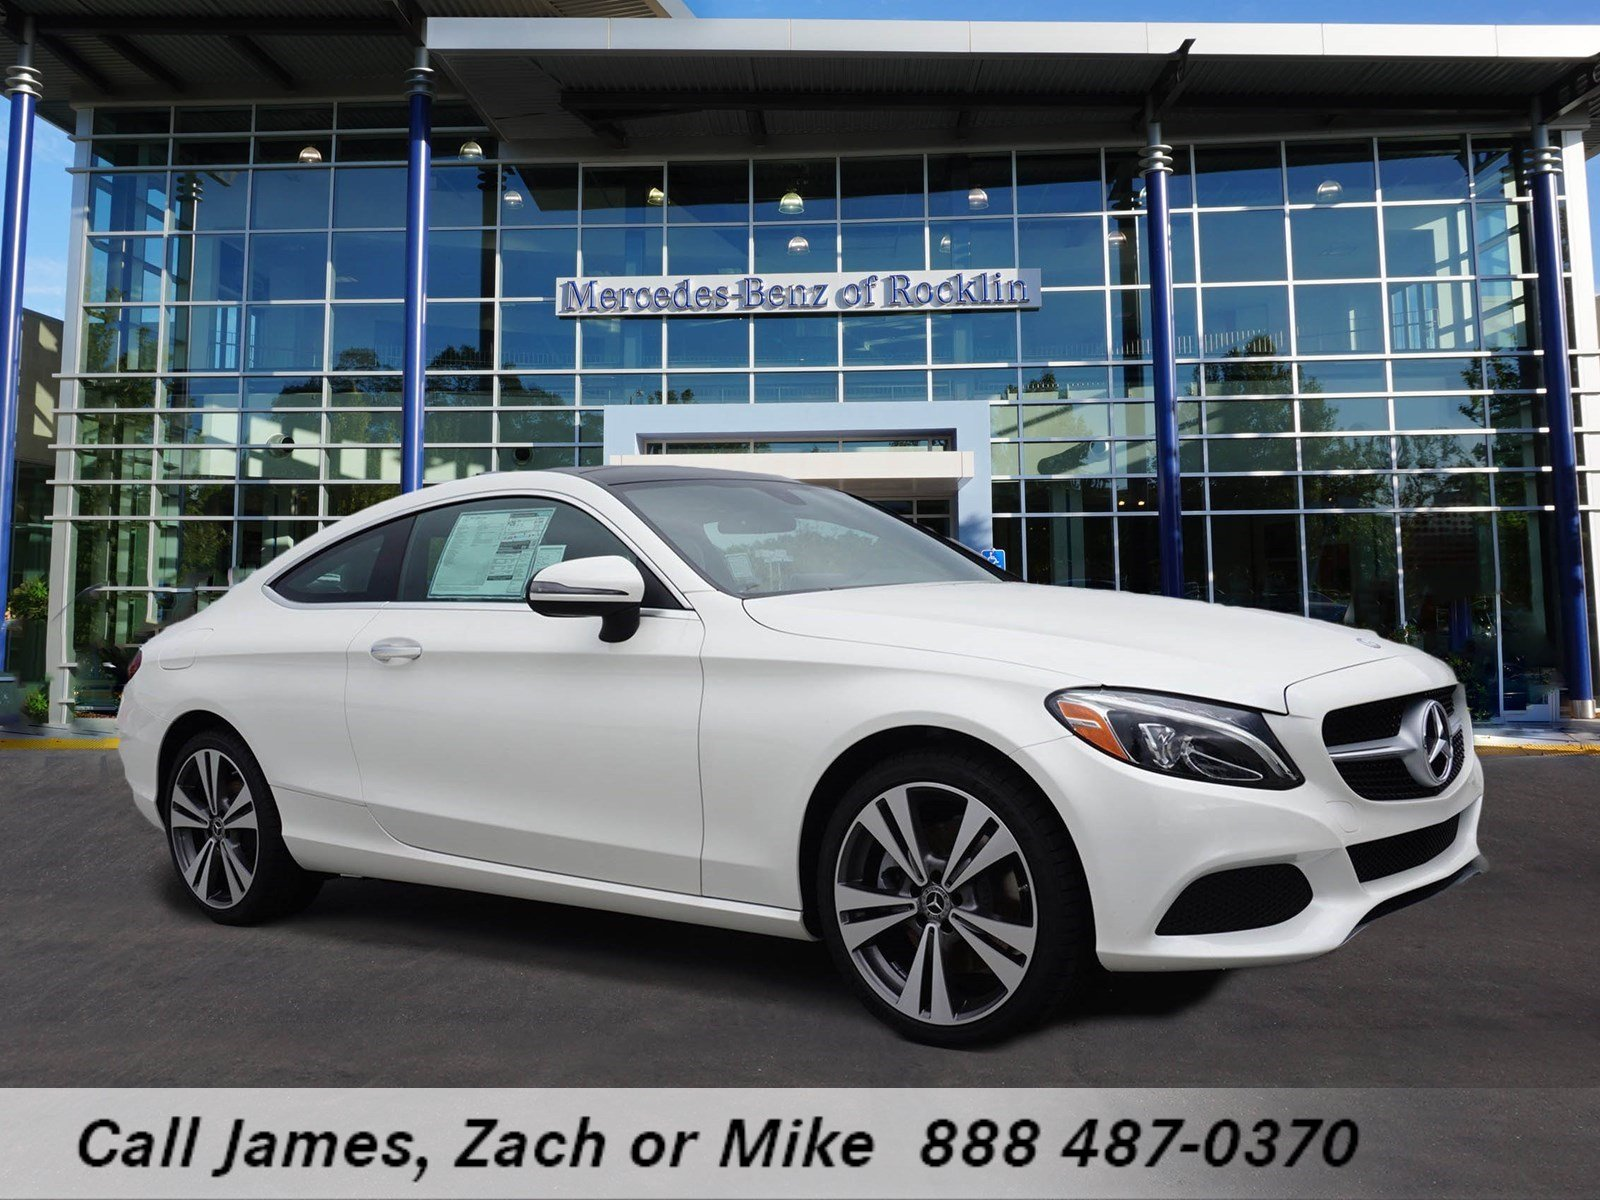 New 2017 mercedes benz c class c 300 coupe in rocklin for Mercedes benz rocklin service